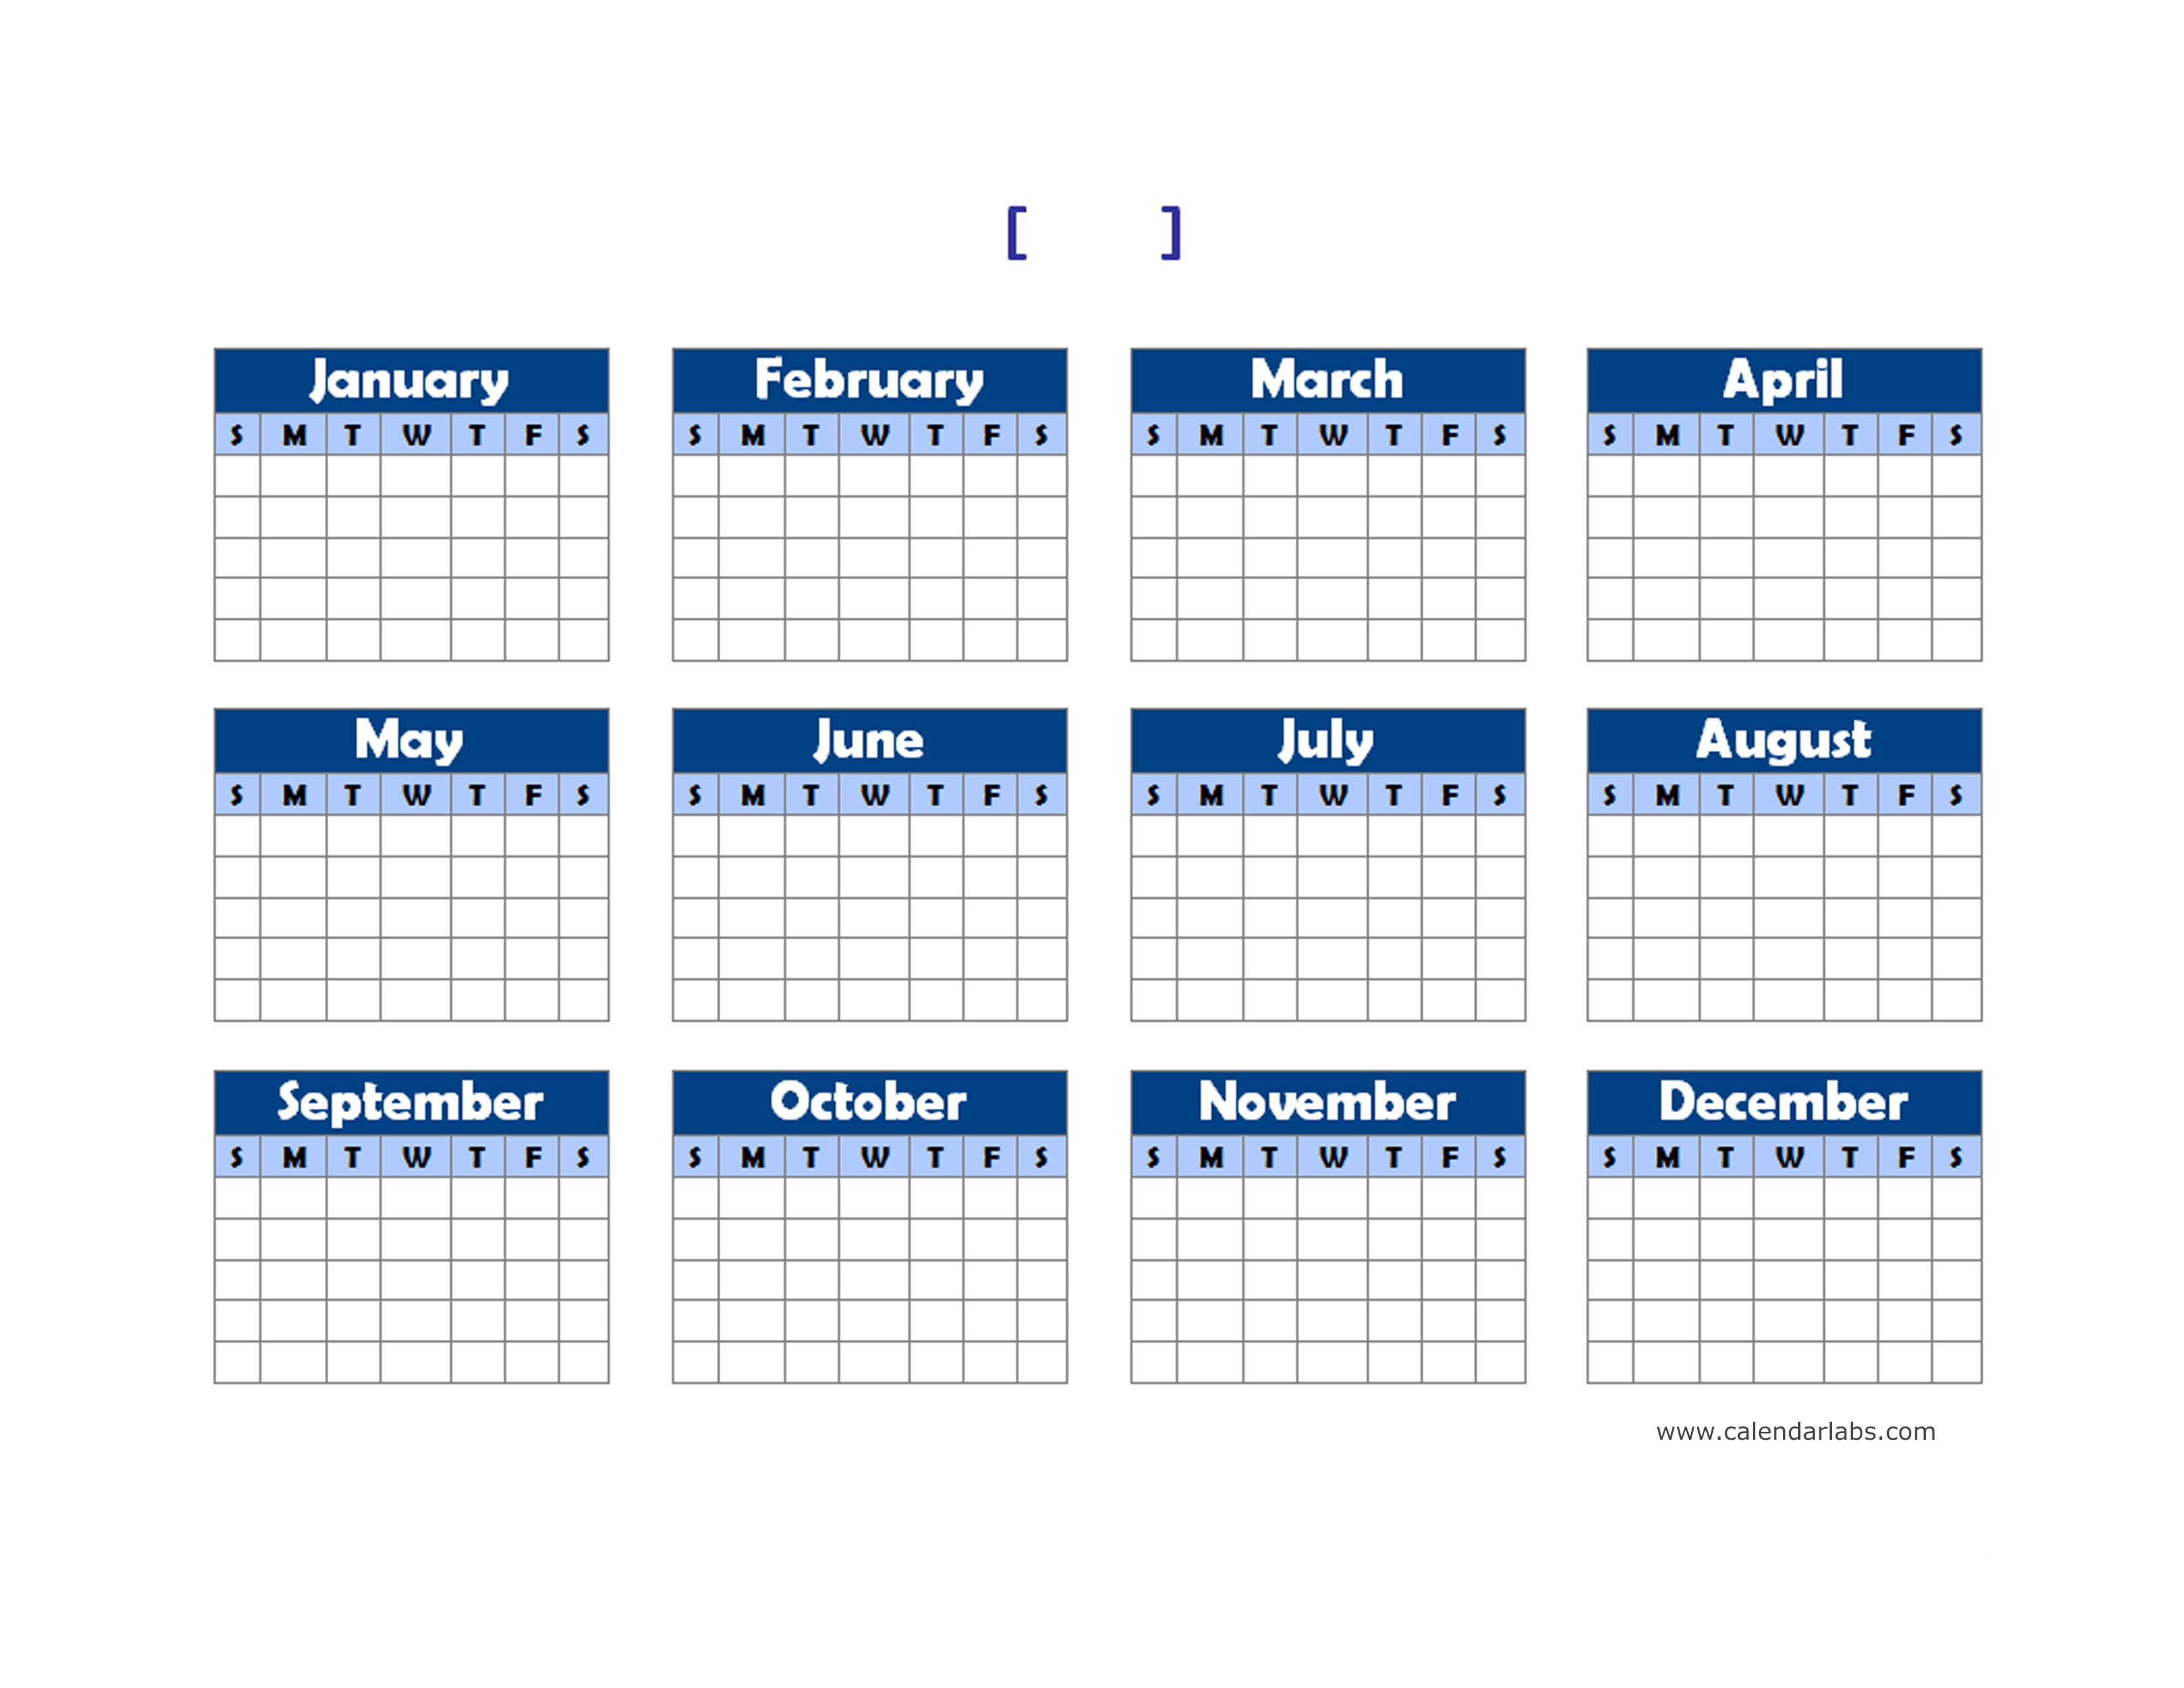 Weekly Calendar Landscape View : Yearly blank calendar landscape free printable templates